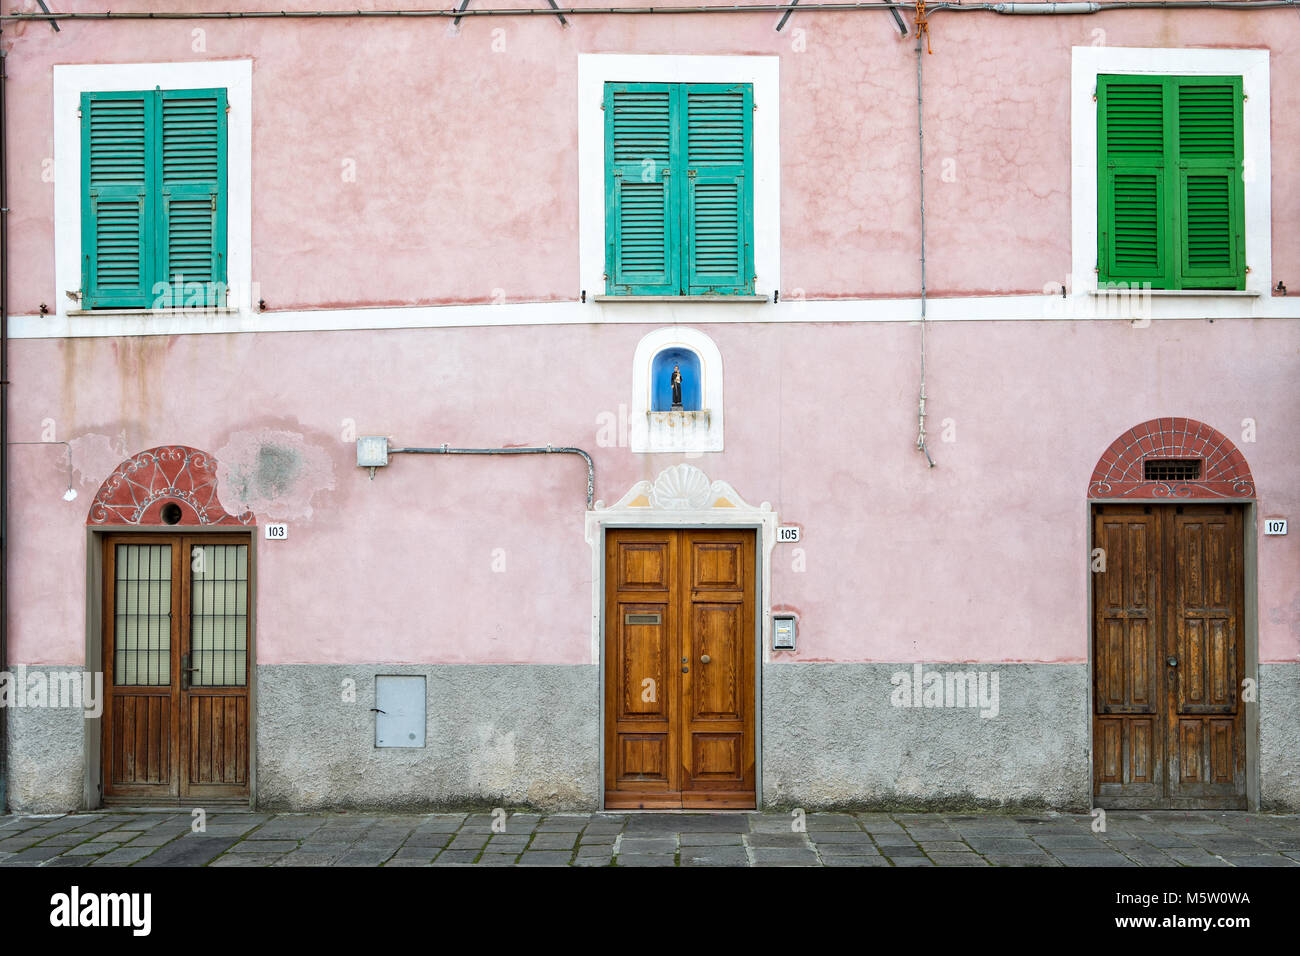 Closed doors and shutters of a building in Le Grazie, Porto Venere, Liguria, Italy - Stock Image